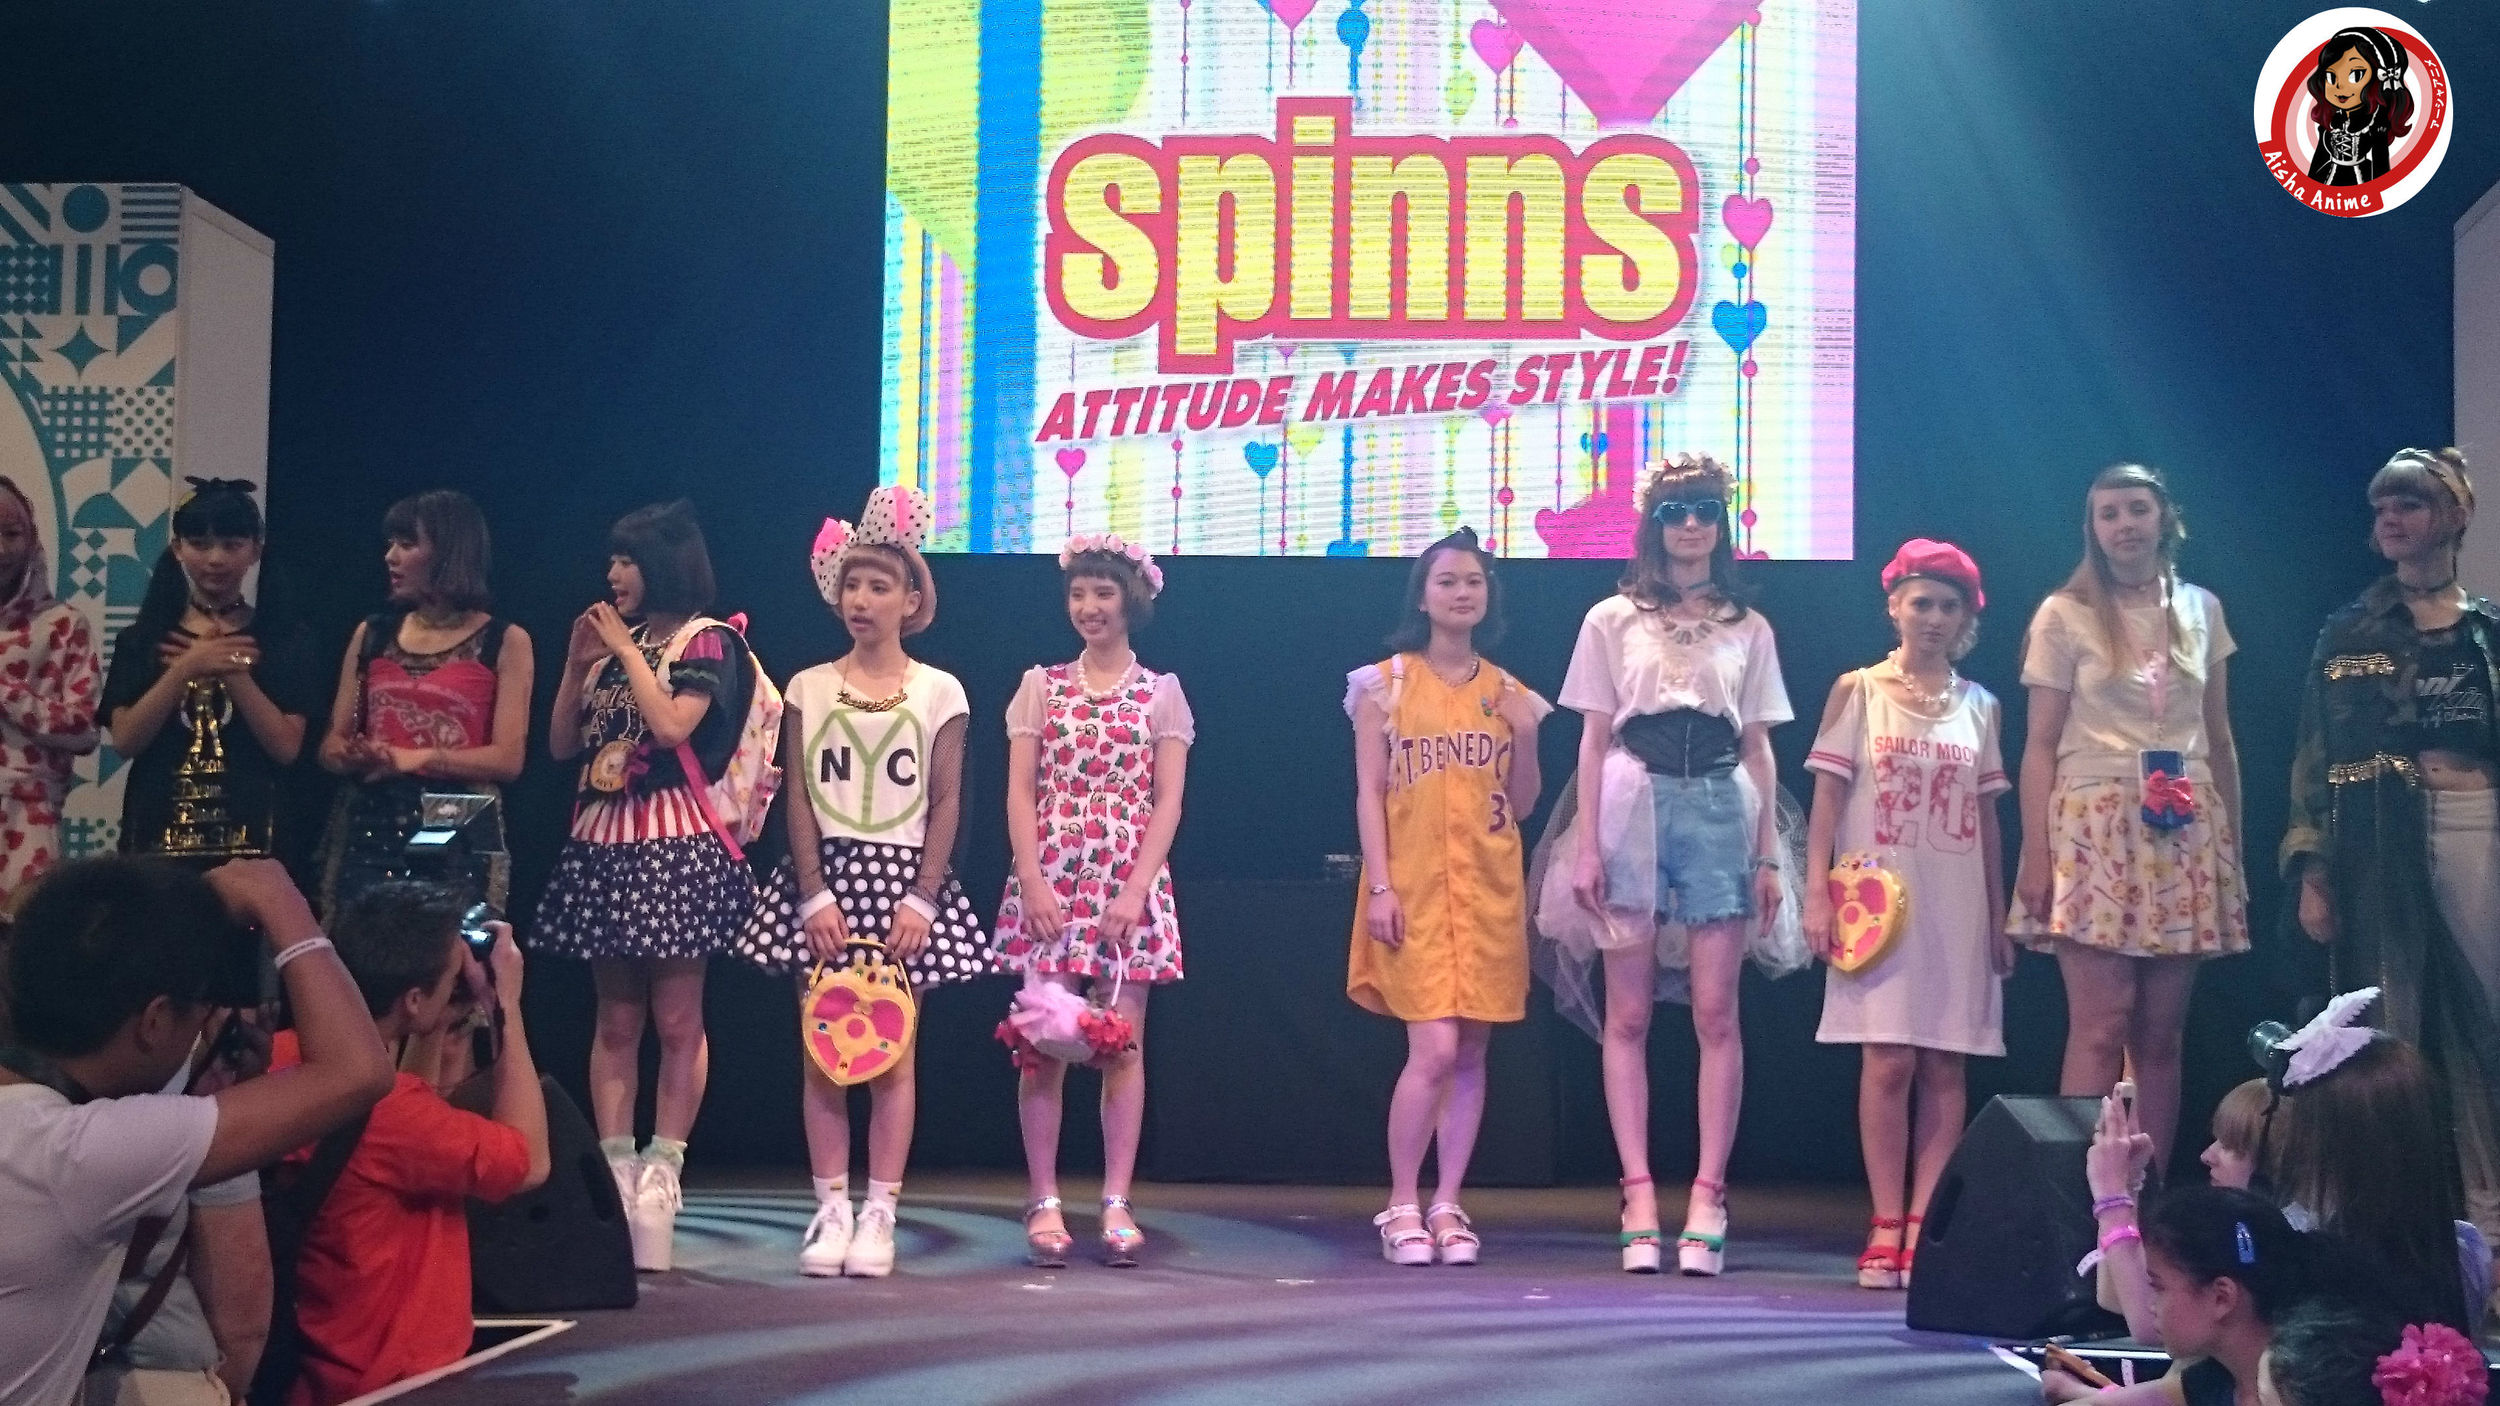 The models are wearing Sailor Moon themed outfits for this particular show